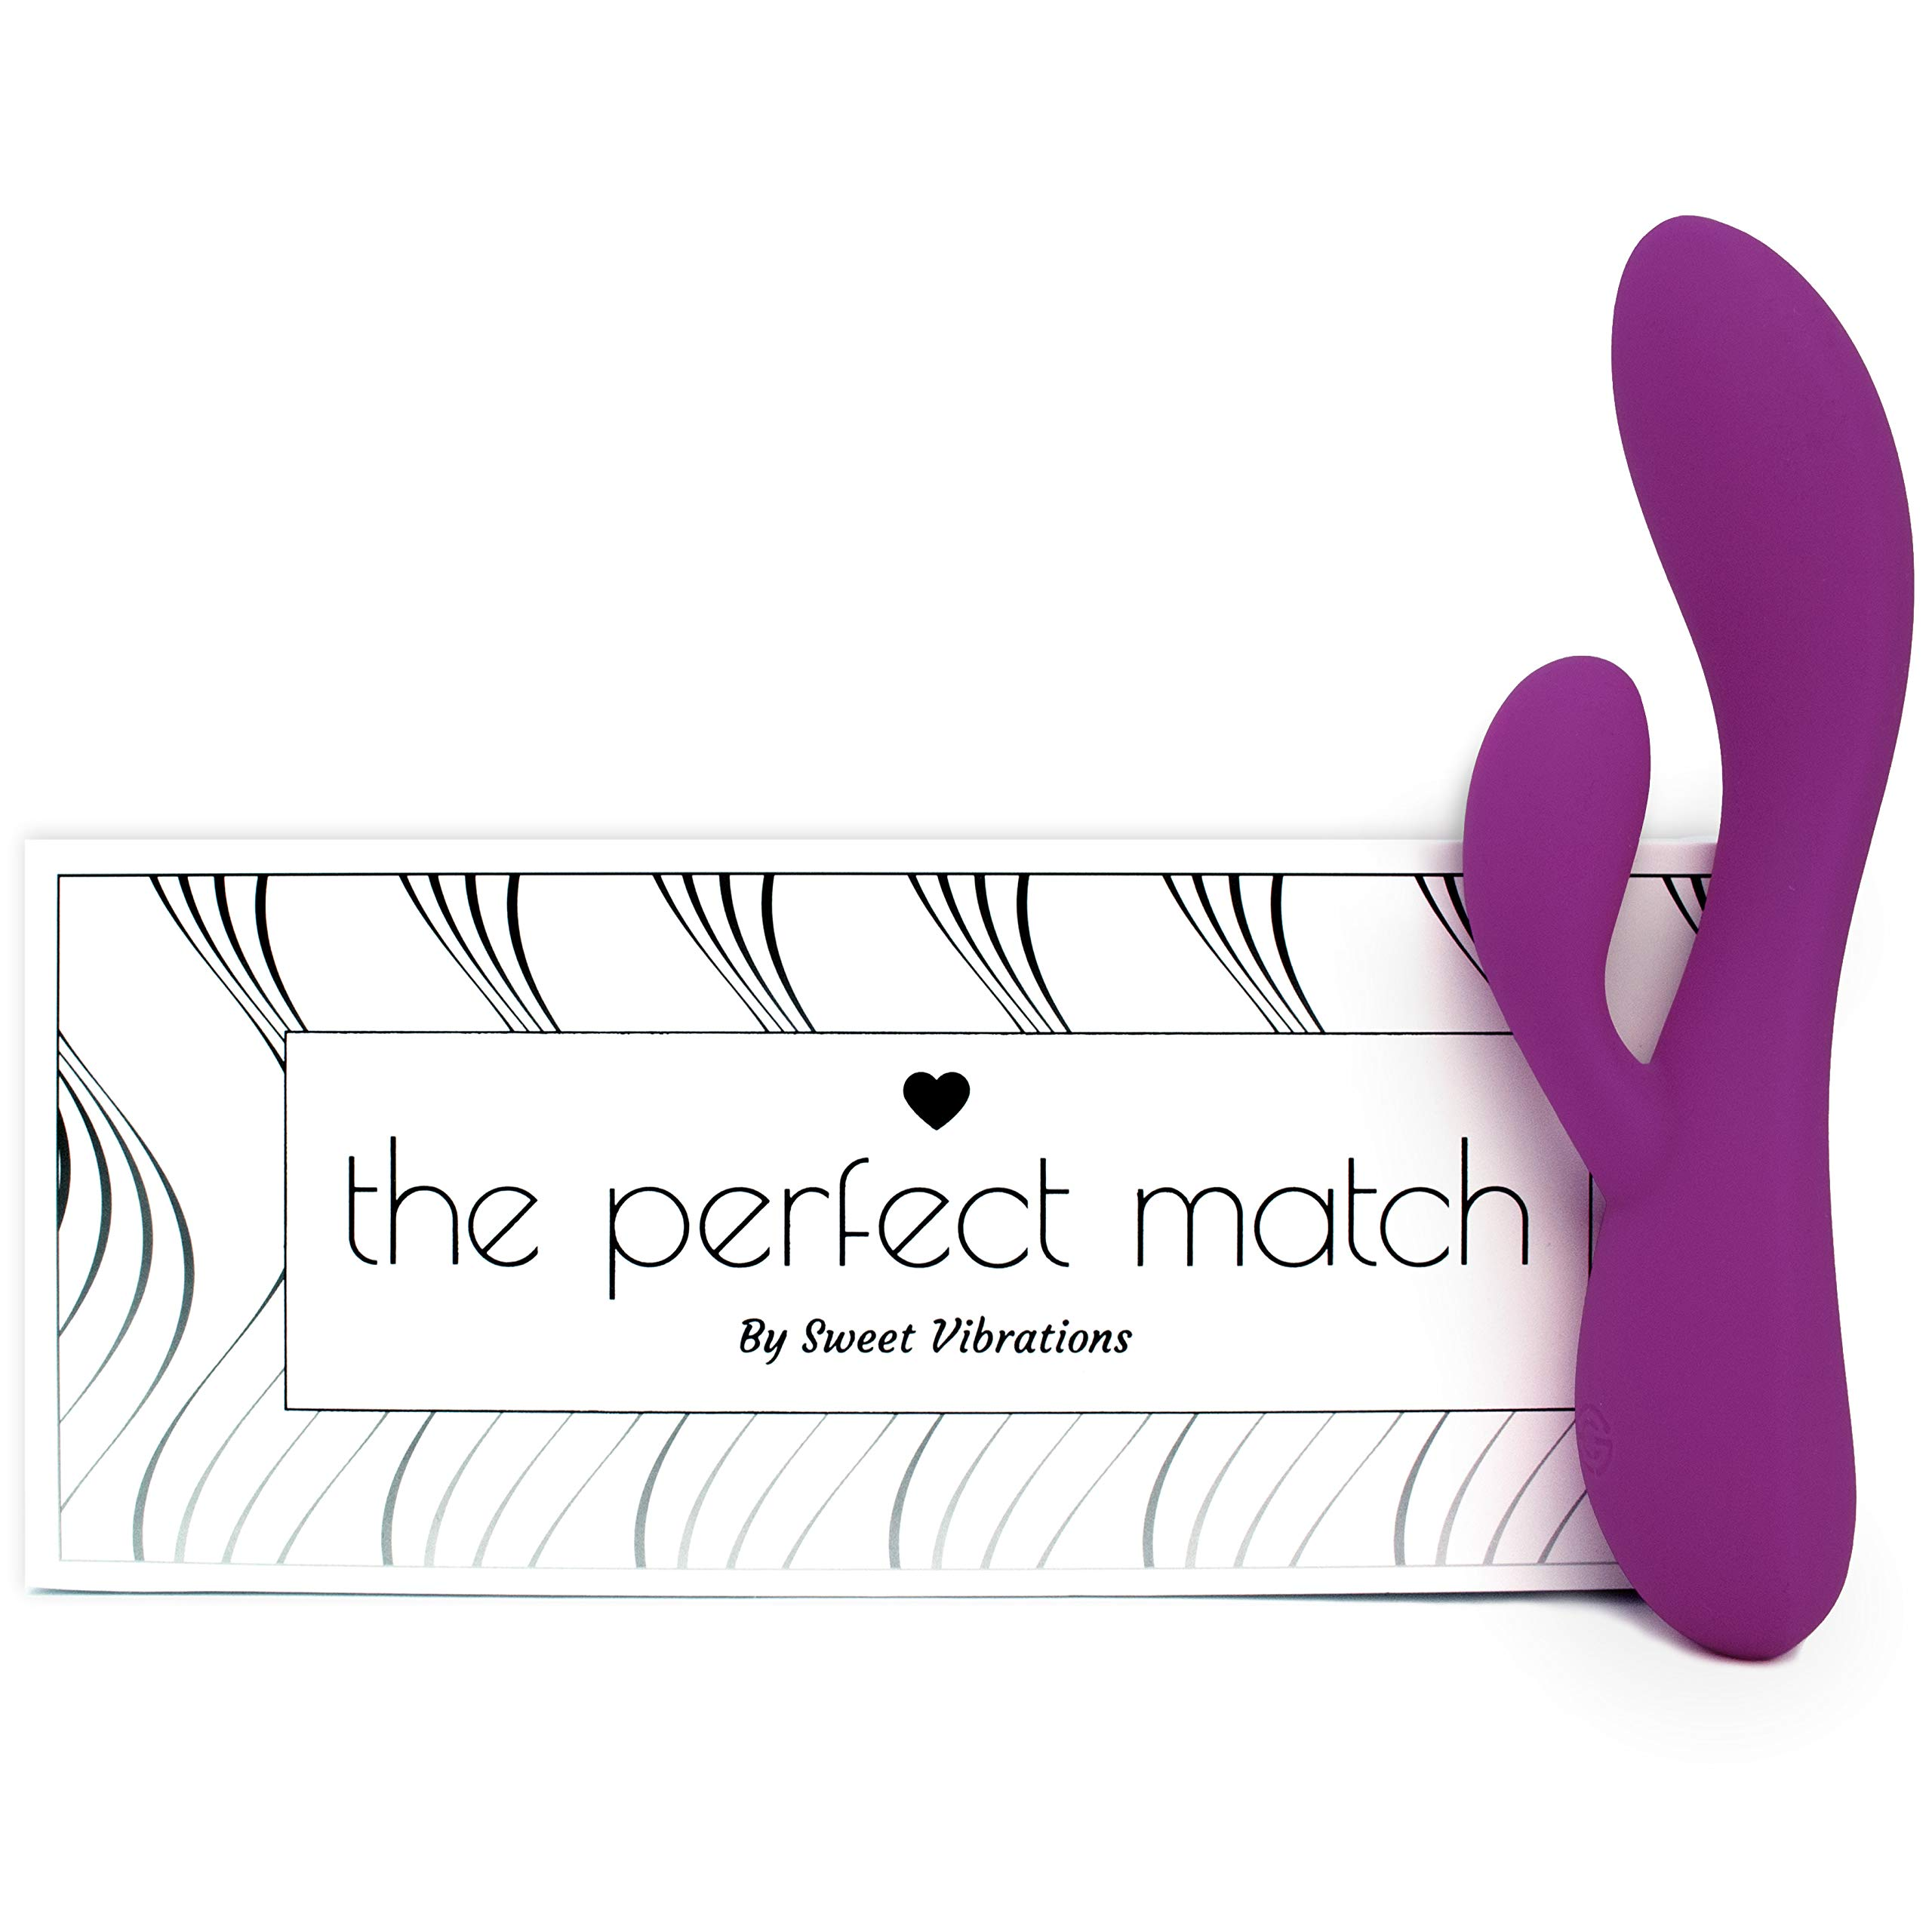 The Perfect Match - Flexible Rabbit Vibrator Sex Toy with 10 Powerful Settings for Women & Couples, Waterproof, Rechargeable, Quiet, by Sweet Vibrations (Lavender) by Sweet Vibrations